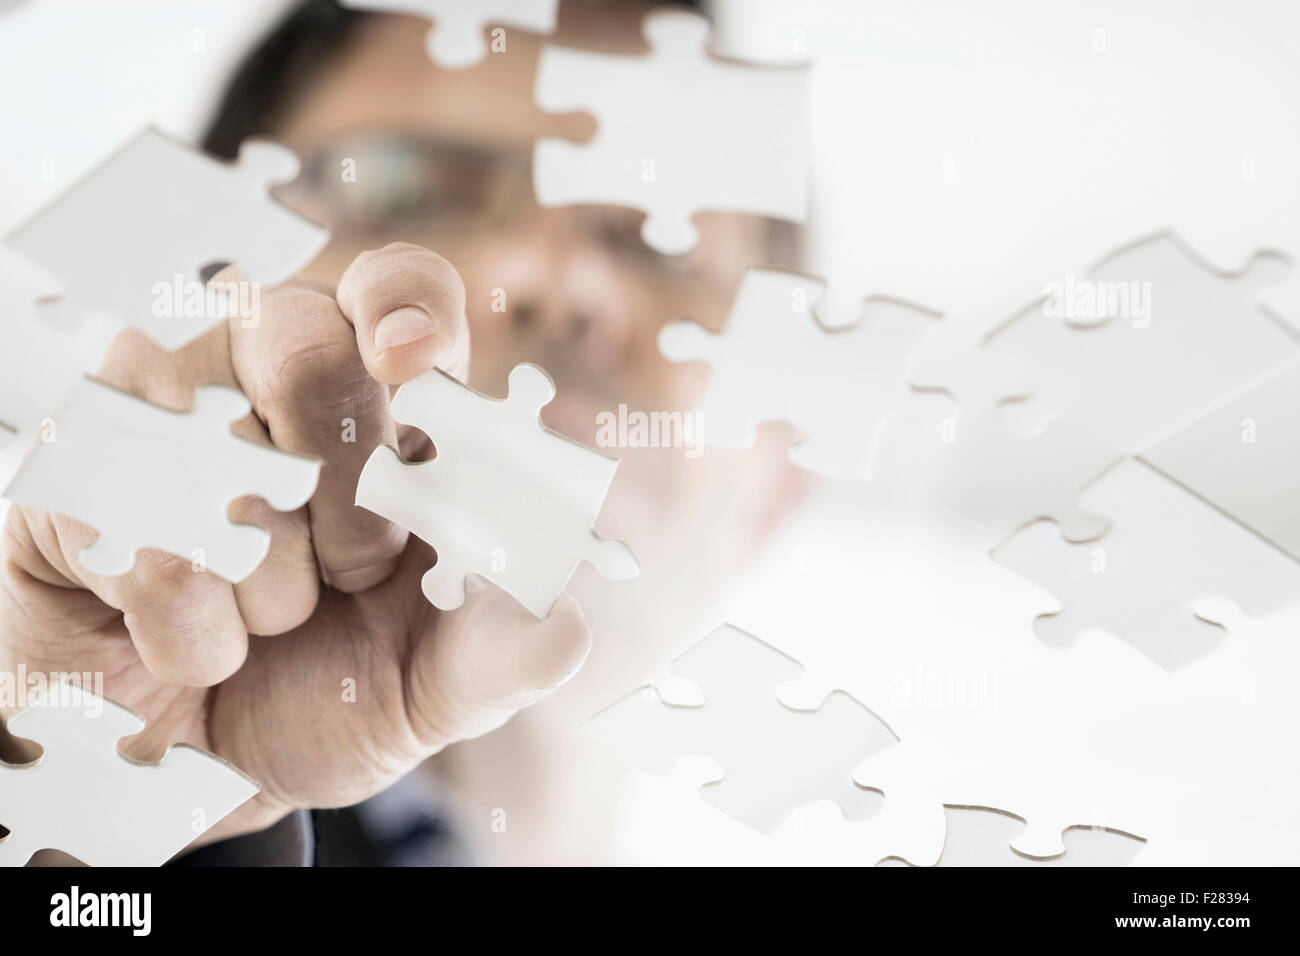 Businessman arranging jigsaw puzzle pieces, Bavaria, Germany - Stock Image